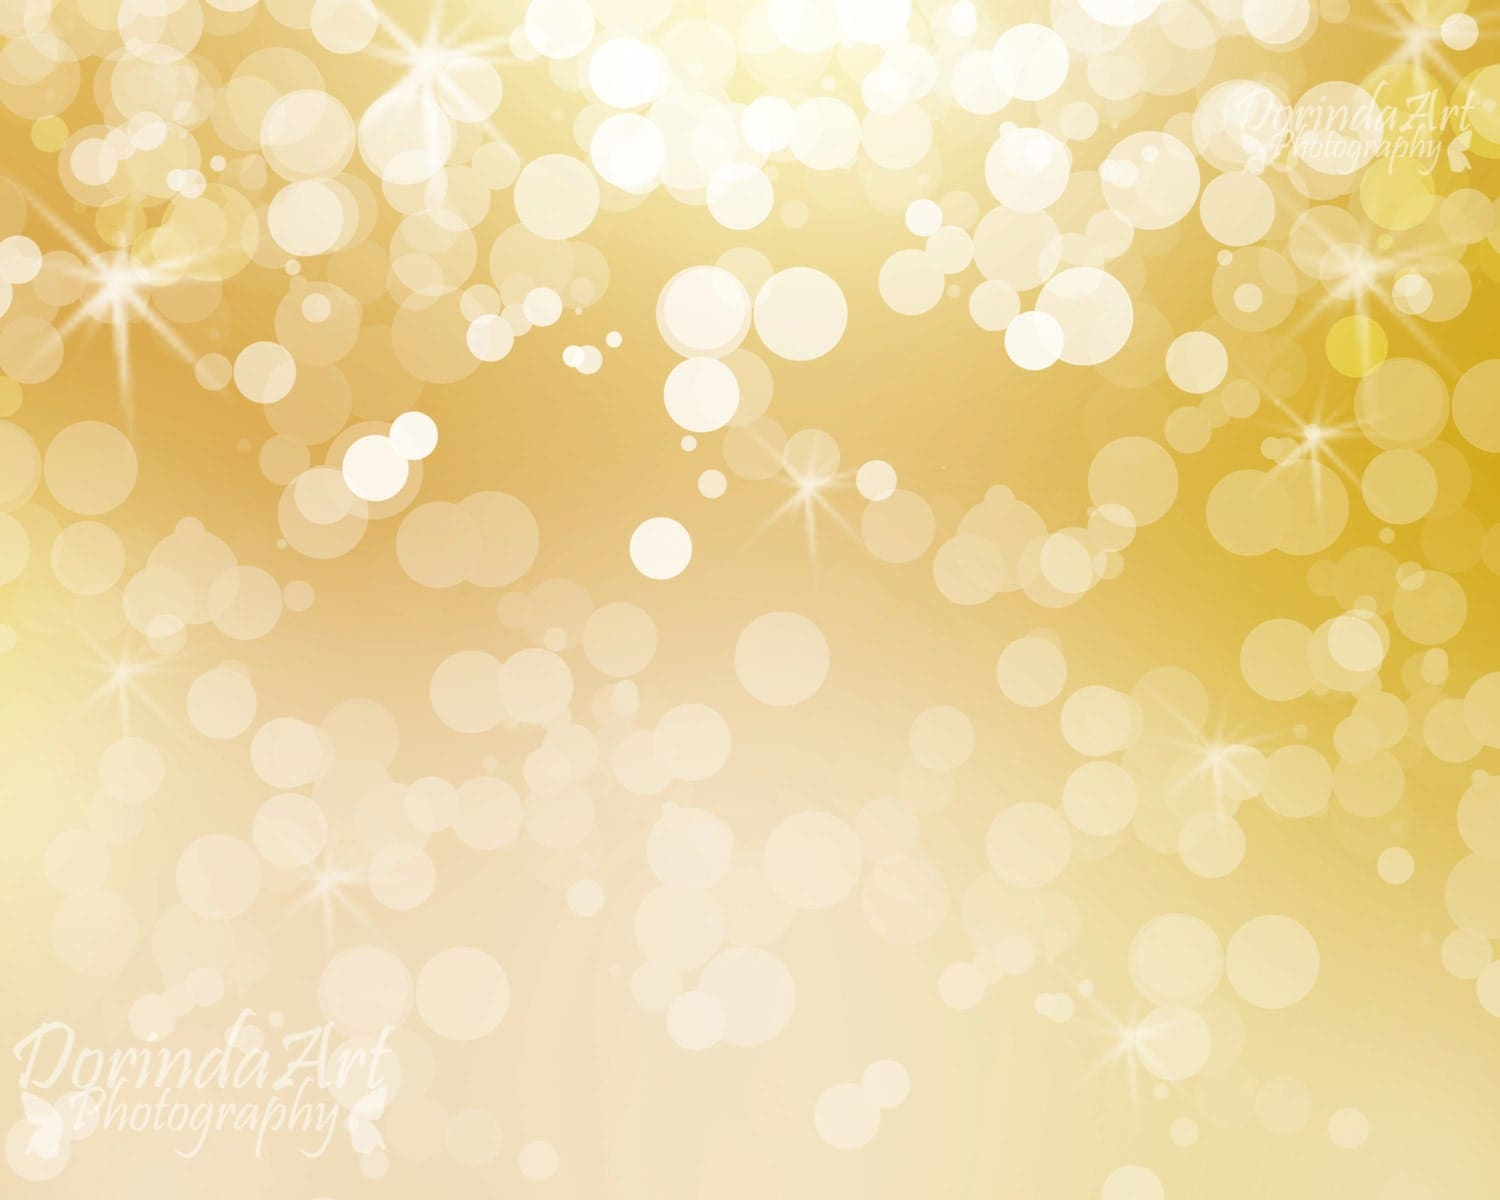 Bokeh Background Photoshop Background Bokeh Overlay